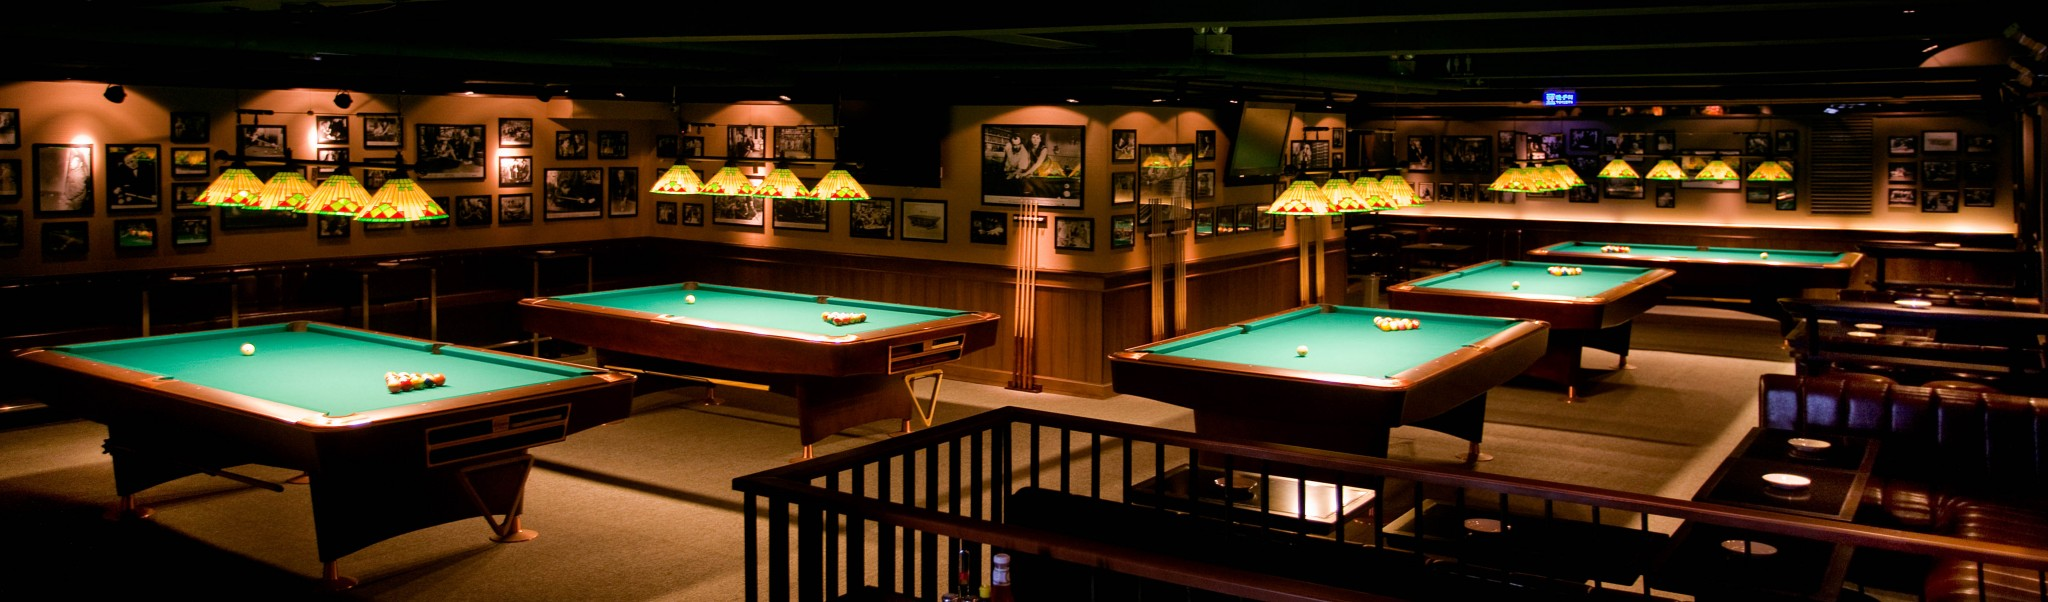 Joe's Billiards & Bar